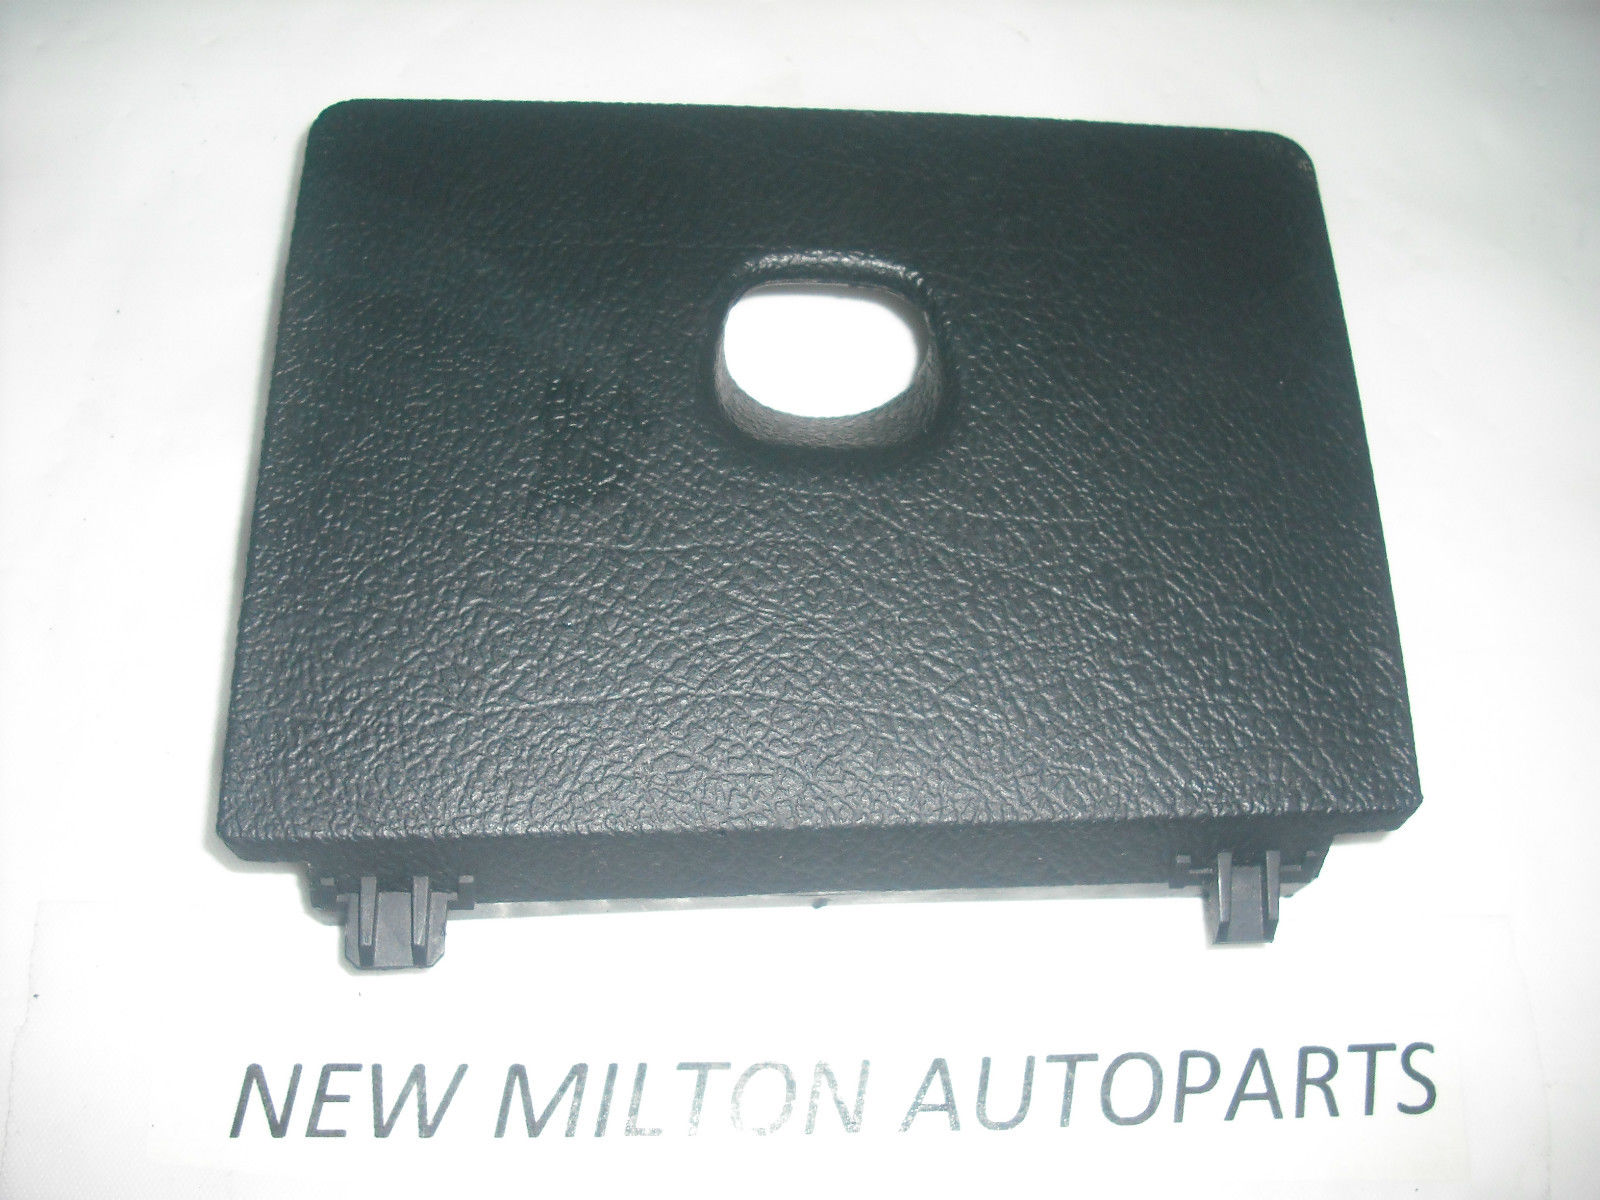 Citroen Saxo Interior Dash Fuse Box Cover 1996